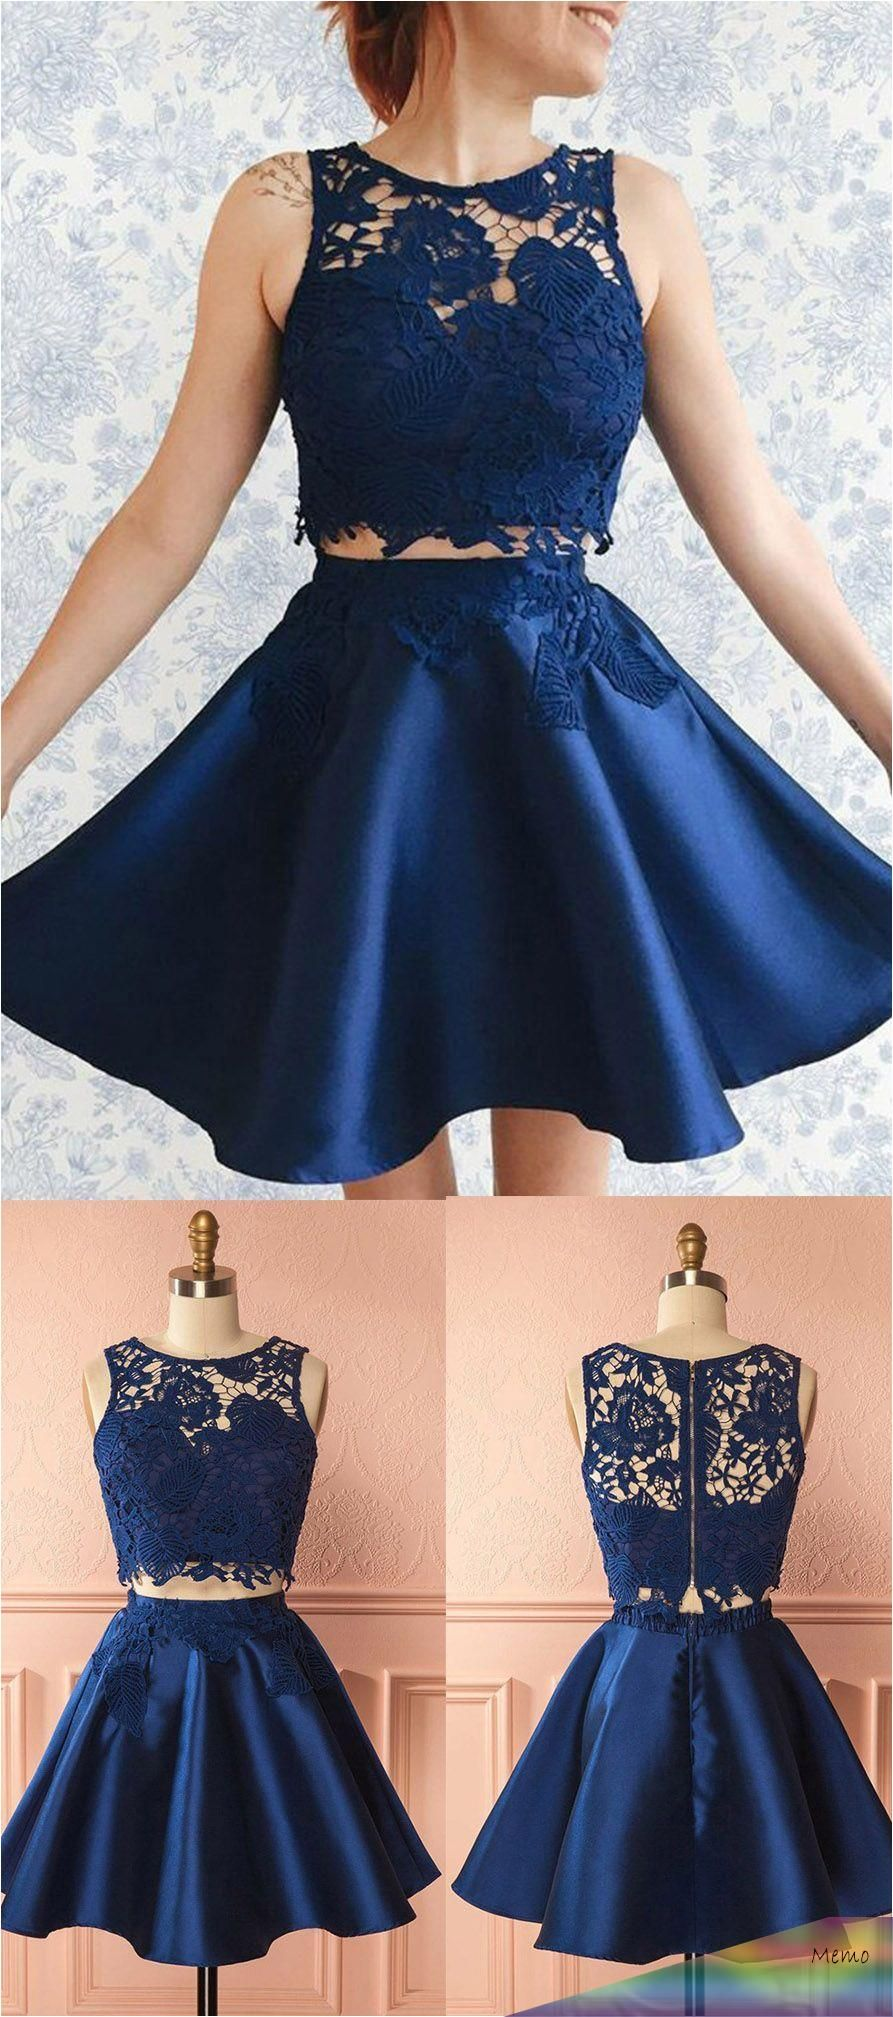 Mar 28, 2020 - Two Pieces Homecoming Dresses,Blue ...